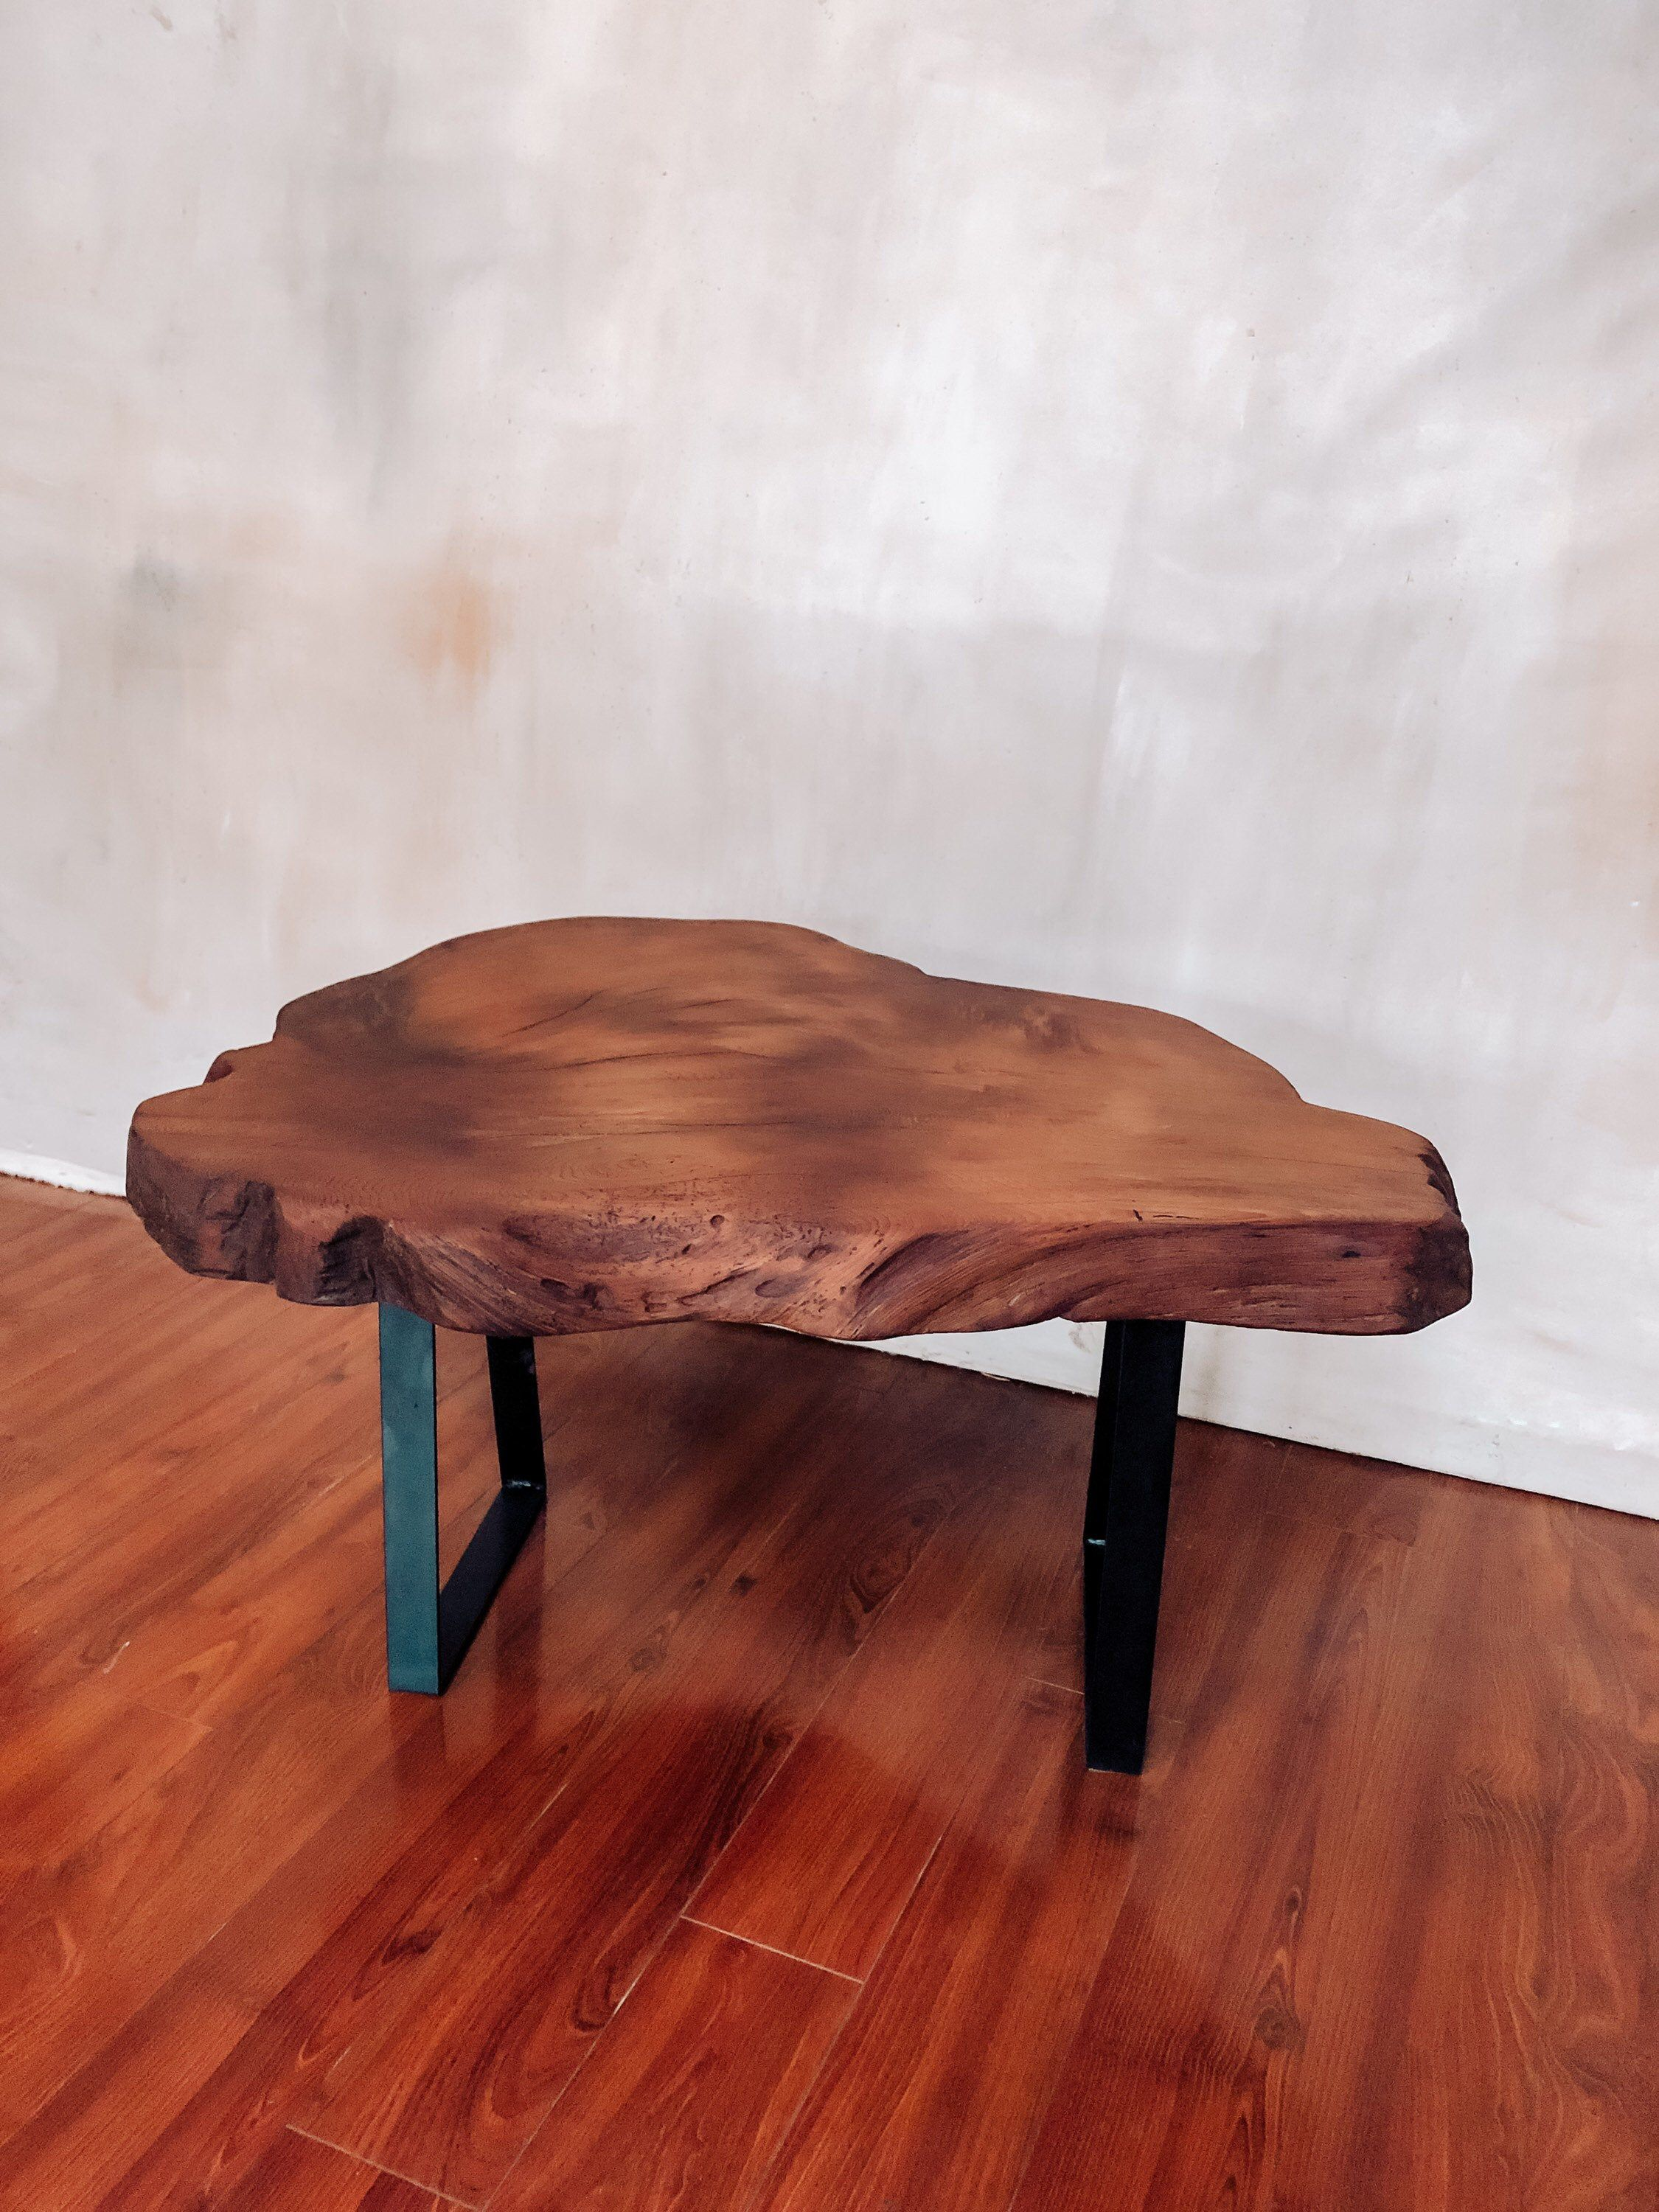 Coffee Table Redwood Table Live Edge Table End Table Etsy In 2020 Coffee Table Custom Coffee Table Live Edge Coffee Table